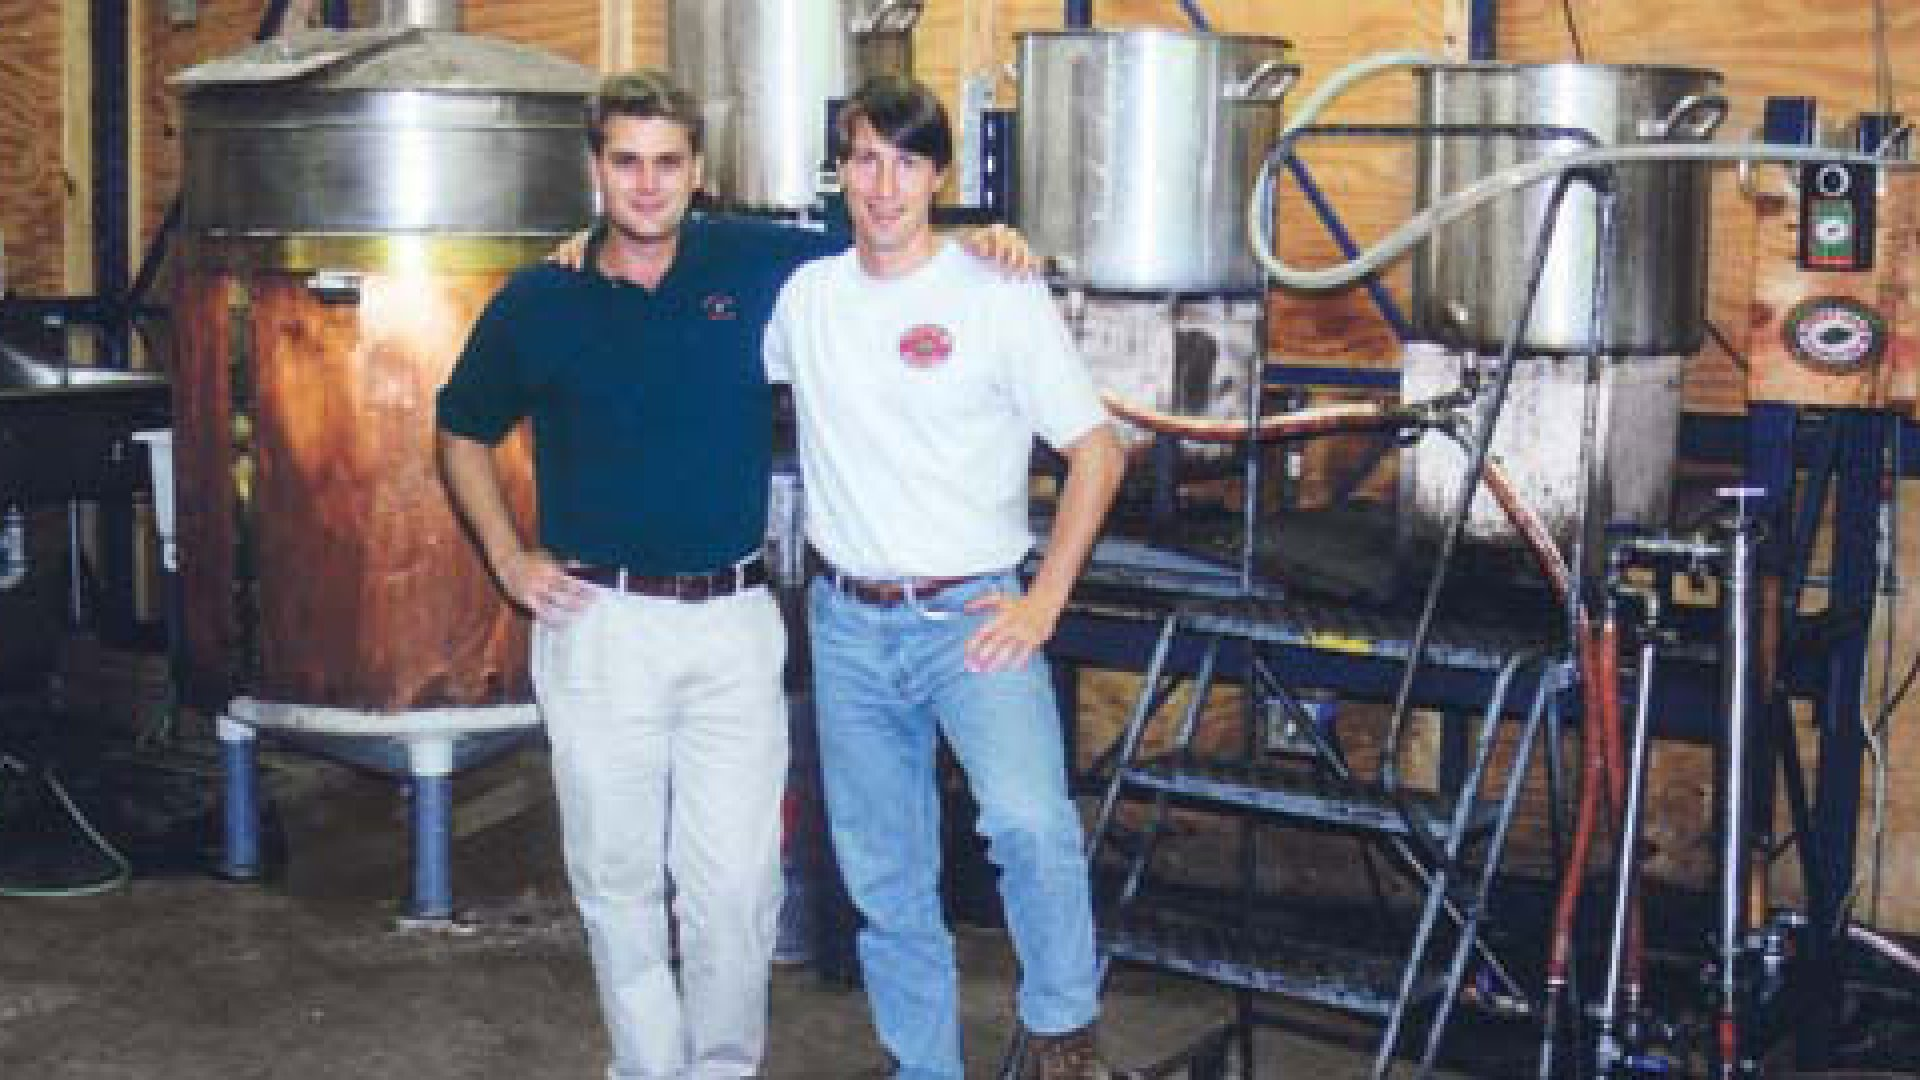 <strong>BREW BOYS</strong> Clayton Christopher (in white shirt) with partner David Smith